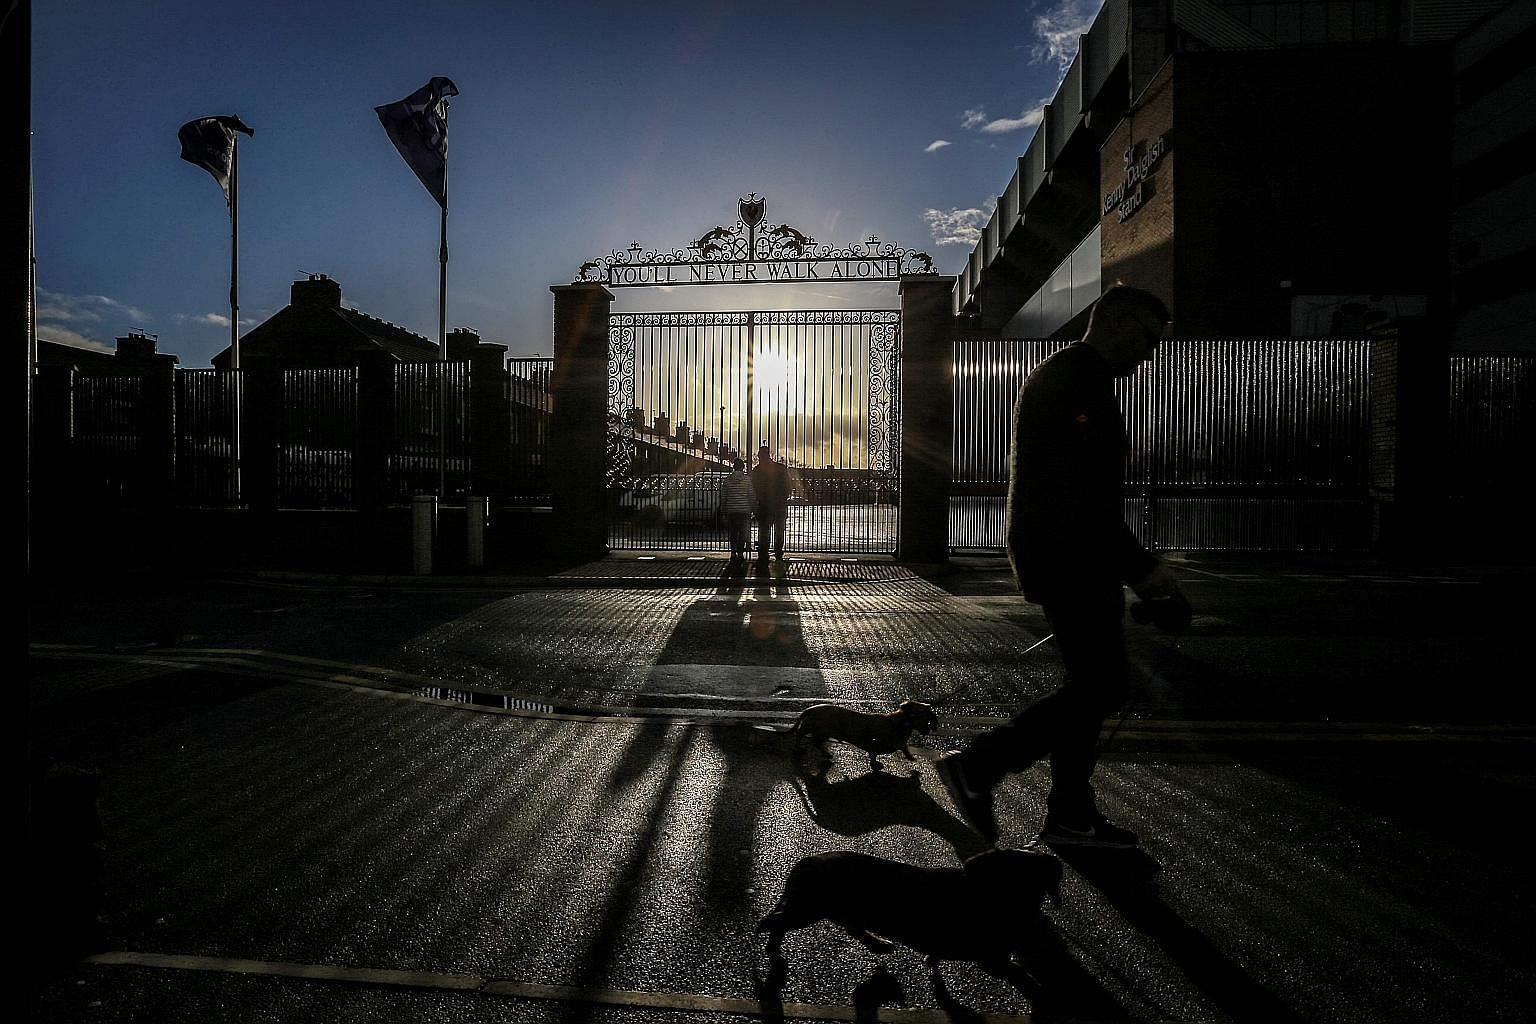 """While the Shankly Gates at Anfield bask in the sunlight, the club built by former manager Bill Shankly were not covering themselves in glory after Liverpool became the latest club to, according to former midfielder Dietmar Hamann, """"take advantage"""" of"""